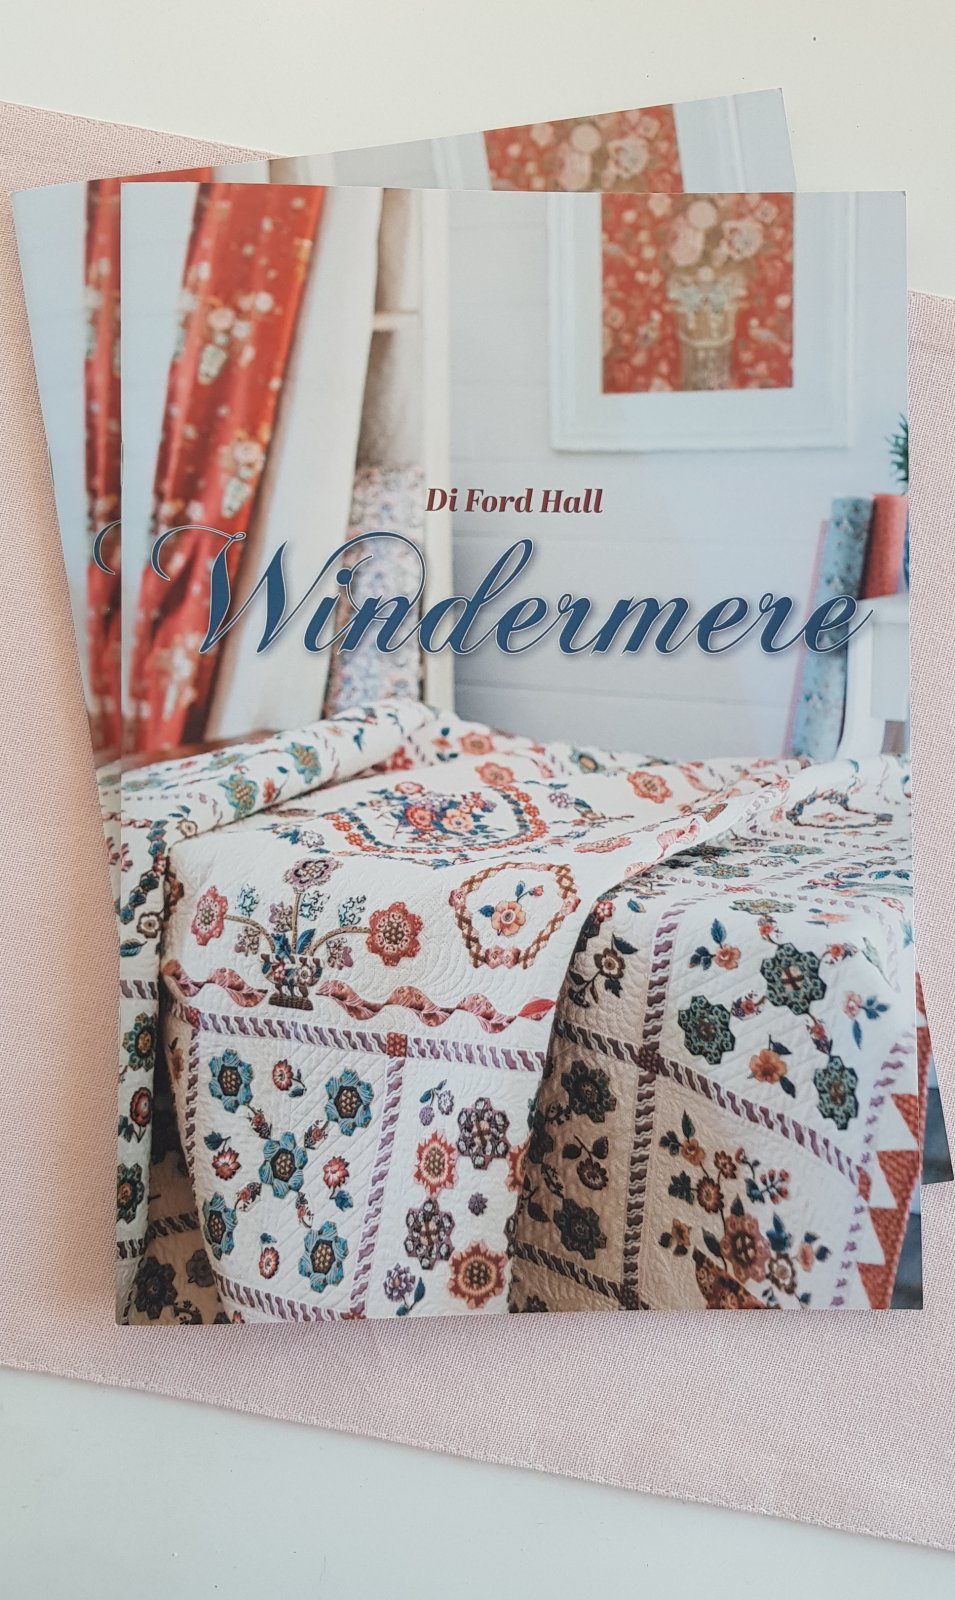 Di Ford-Hall - Windemere - Tribute Booklet and Pattern